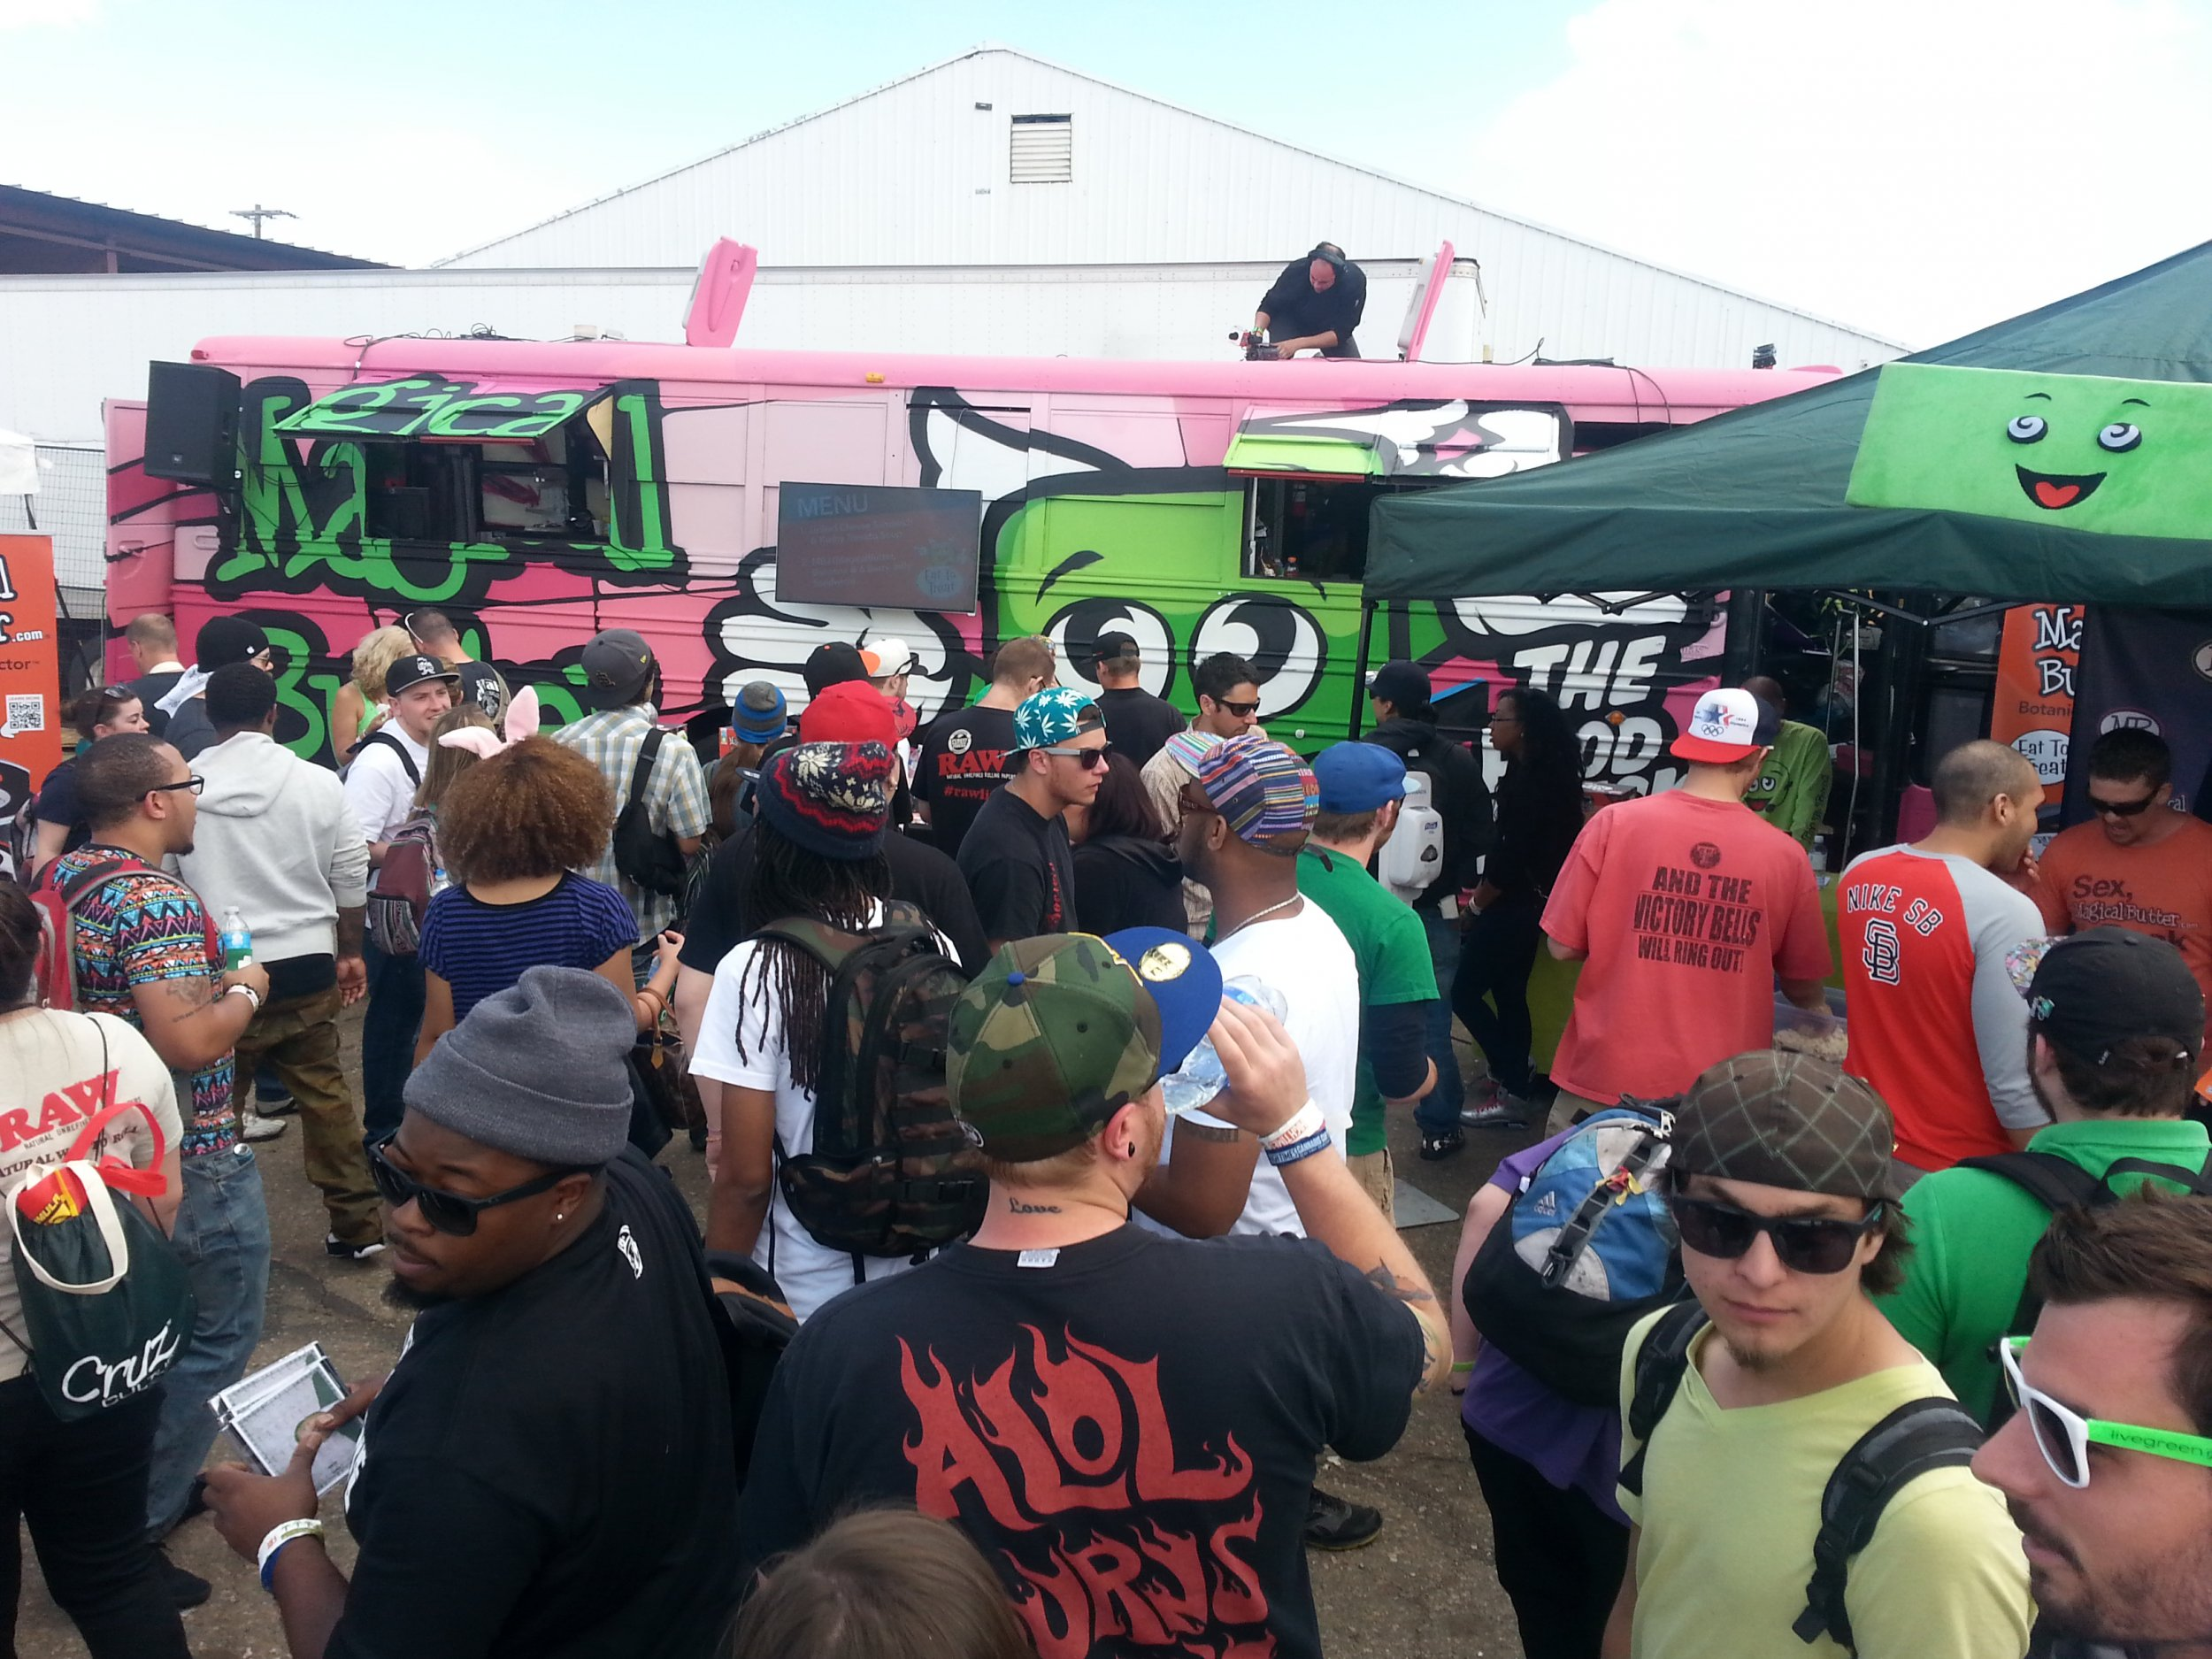 Food truck and crowd